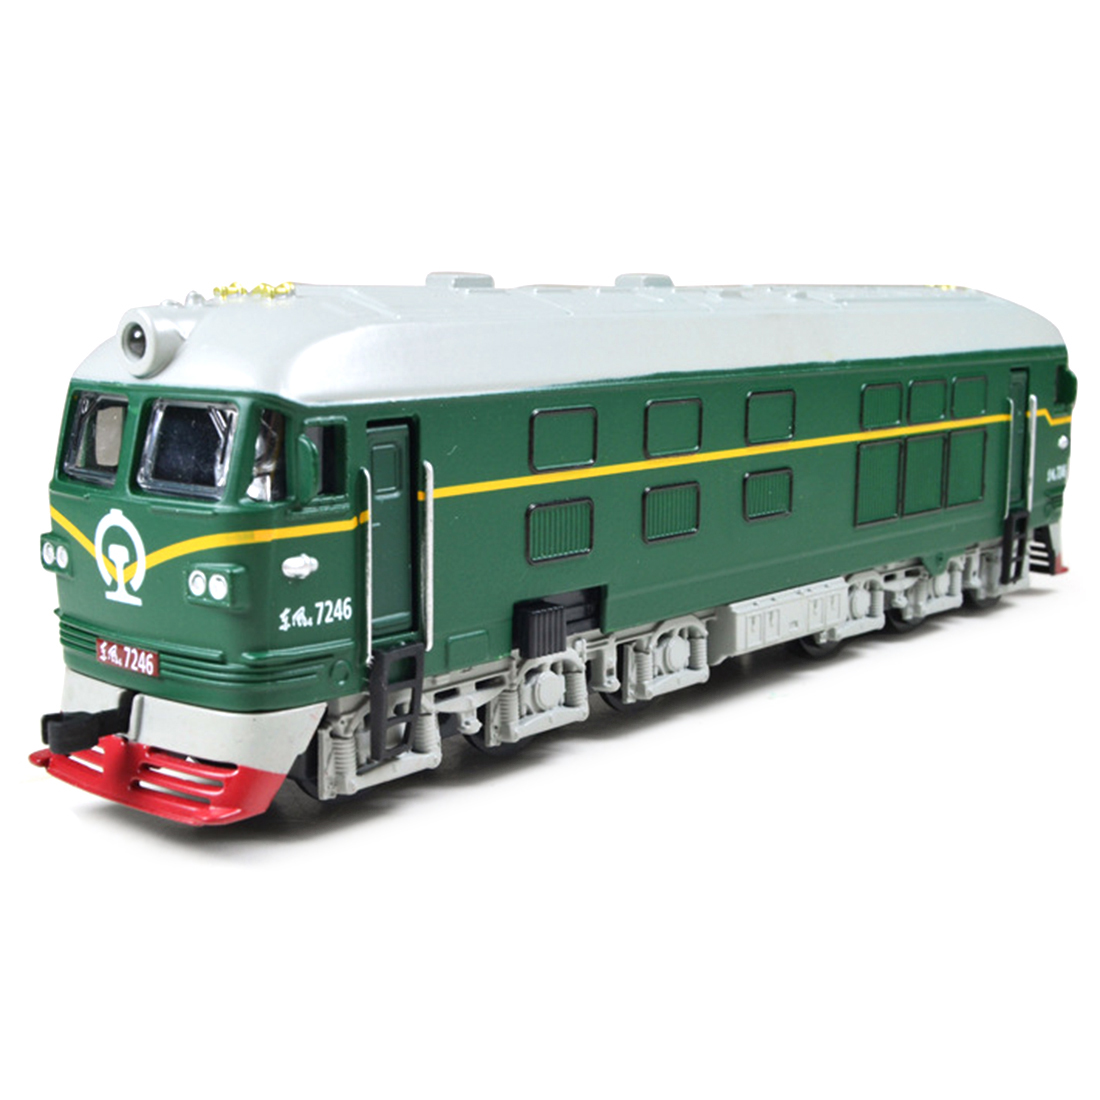 1:87 Simulated Alloy Train Locomotive Model Pull Back Vehicle Toy With Sounds And Lights For DIY Architectural Sand Table Decor